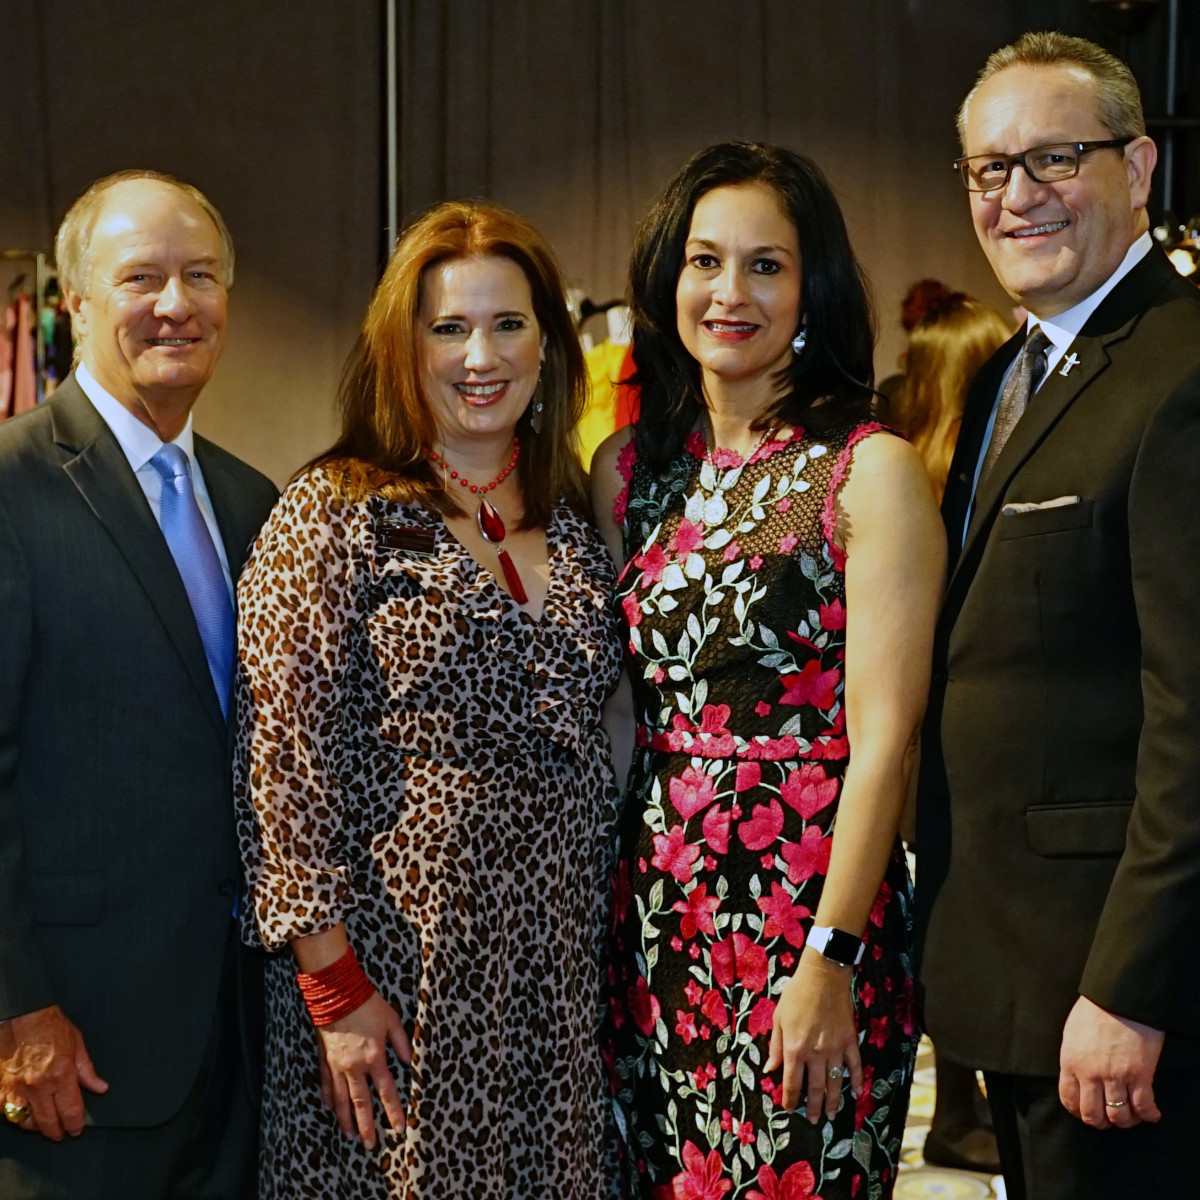 Rodeo Trailblazer Awards Luncheon 2020 HLSR Chairman of the Board Jim Winne, Trailblazer Committee Chair Jennifer Ewing Summerour, HLSR Vice President Tonya Yurgensen-Jacks and HLSR President & CEO Joel Cowley